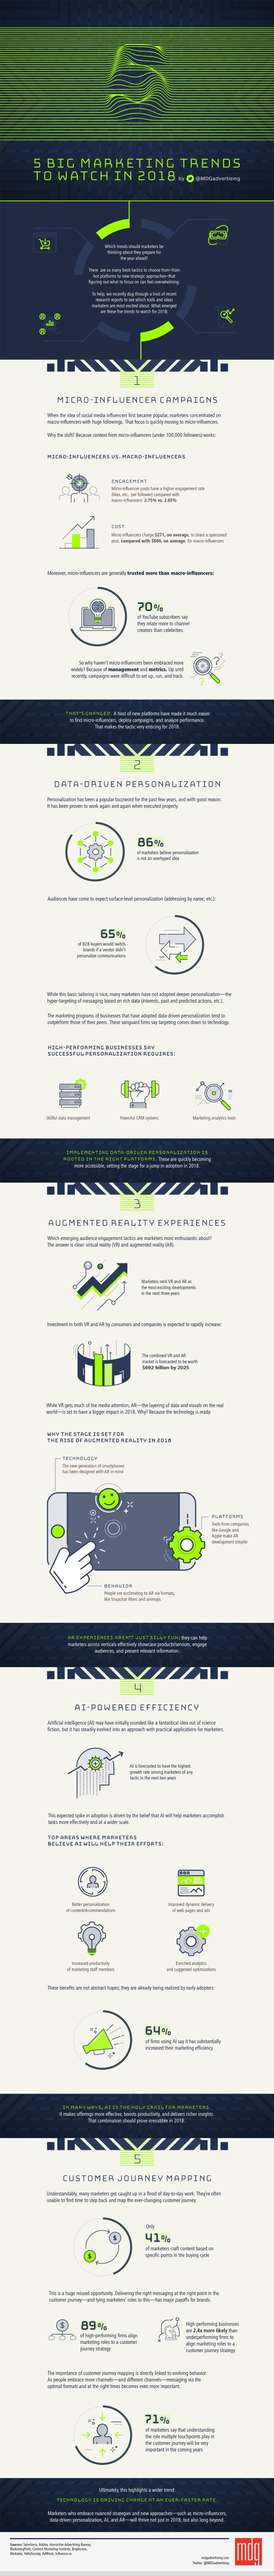 5 Huge Marketing Trends You Have to Watch Out for in 2018 Infographic